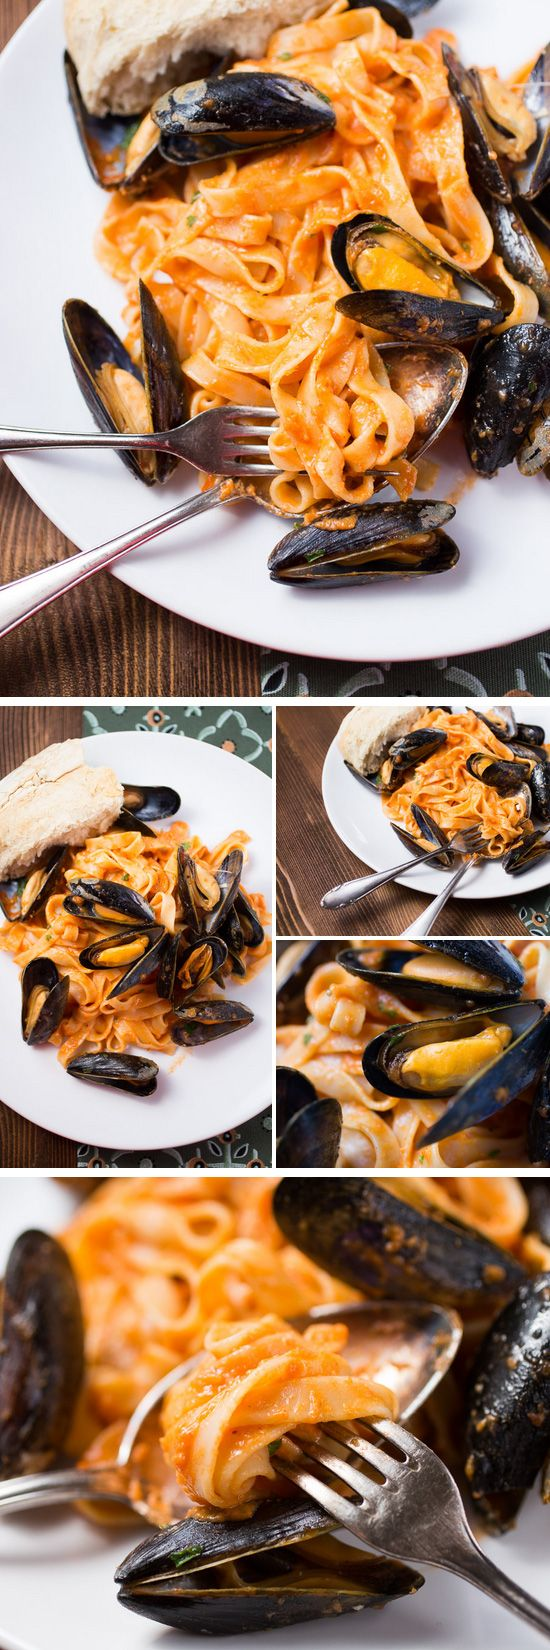 Tagliatelle with Blue Mussels | Click Pic for 22 Easy Romantic Dinner Recipes for Two | Easy Valentines Dinner Ideas for Him